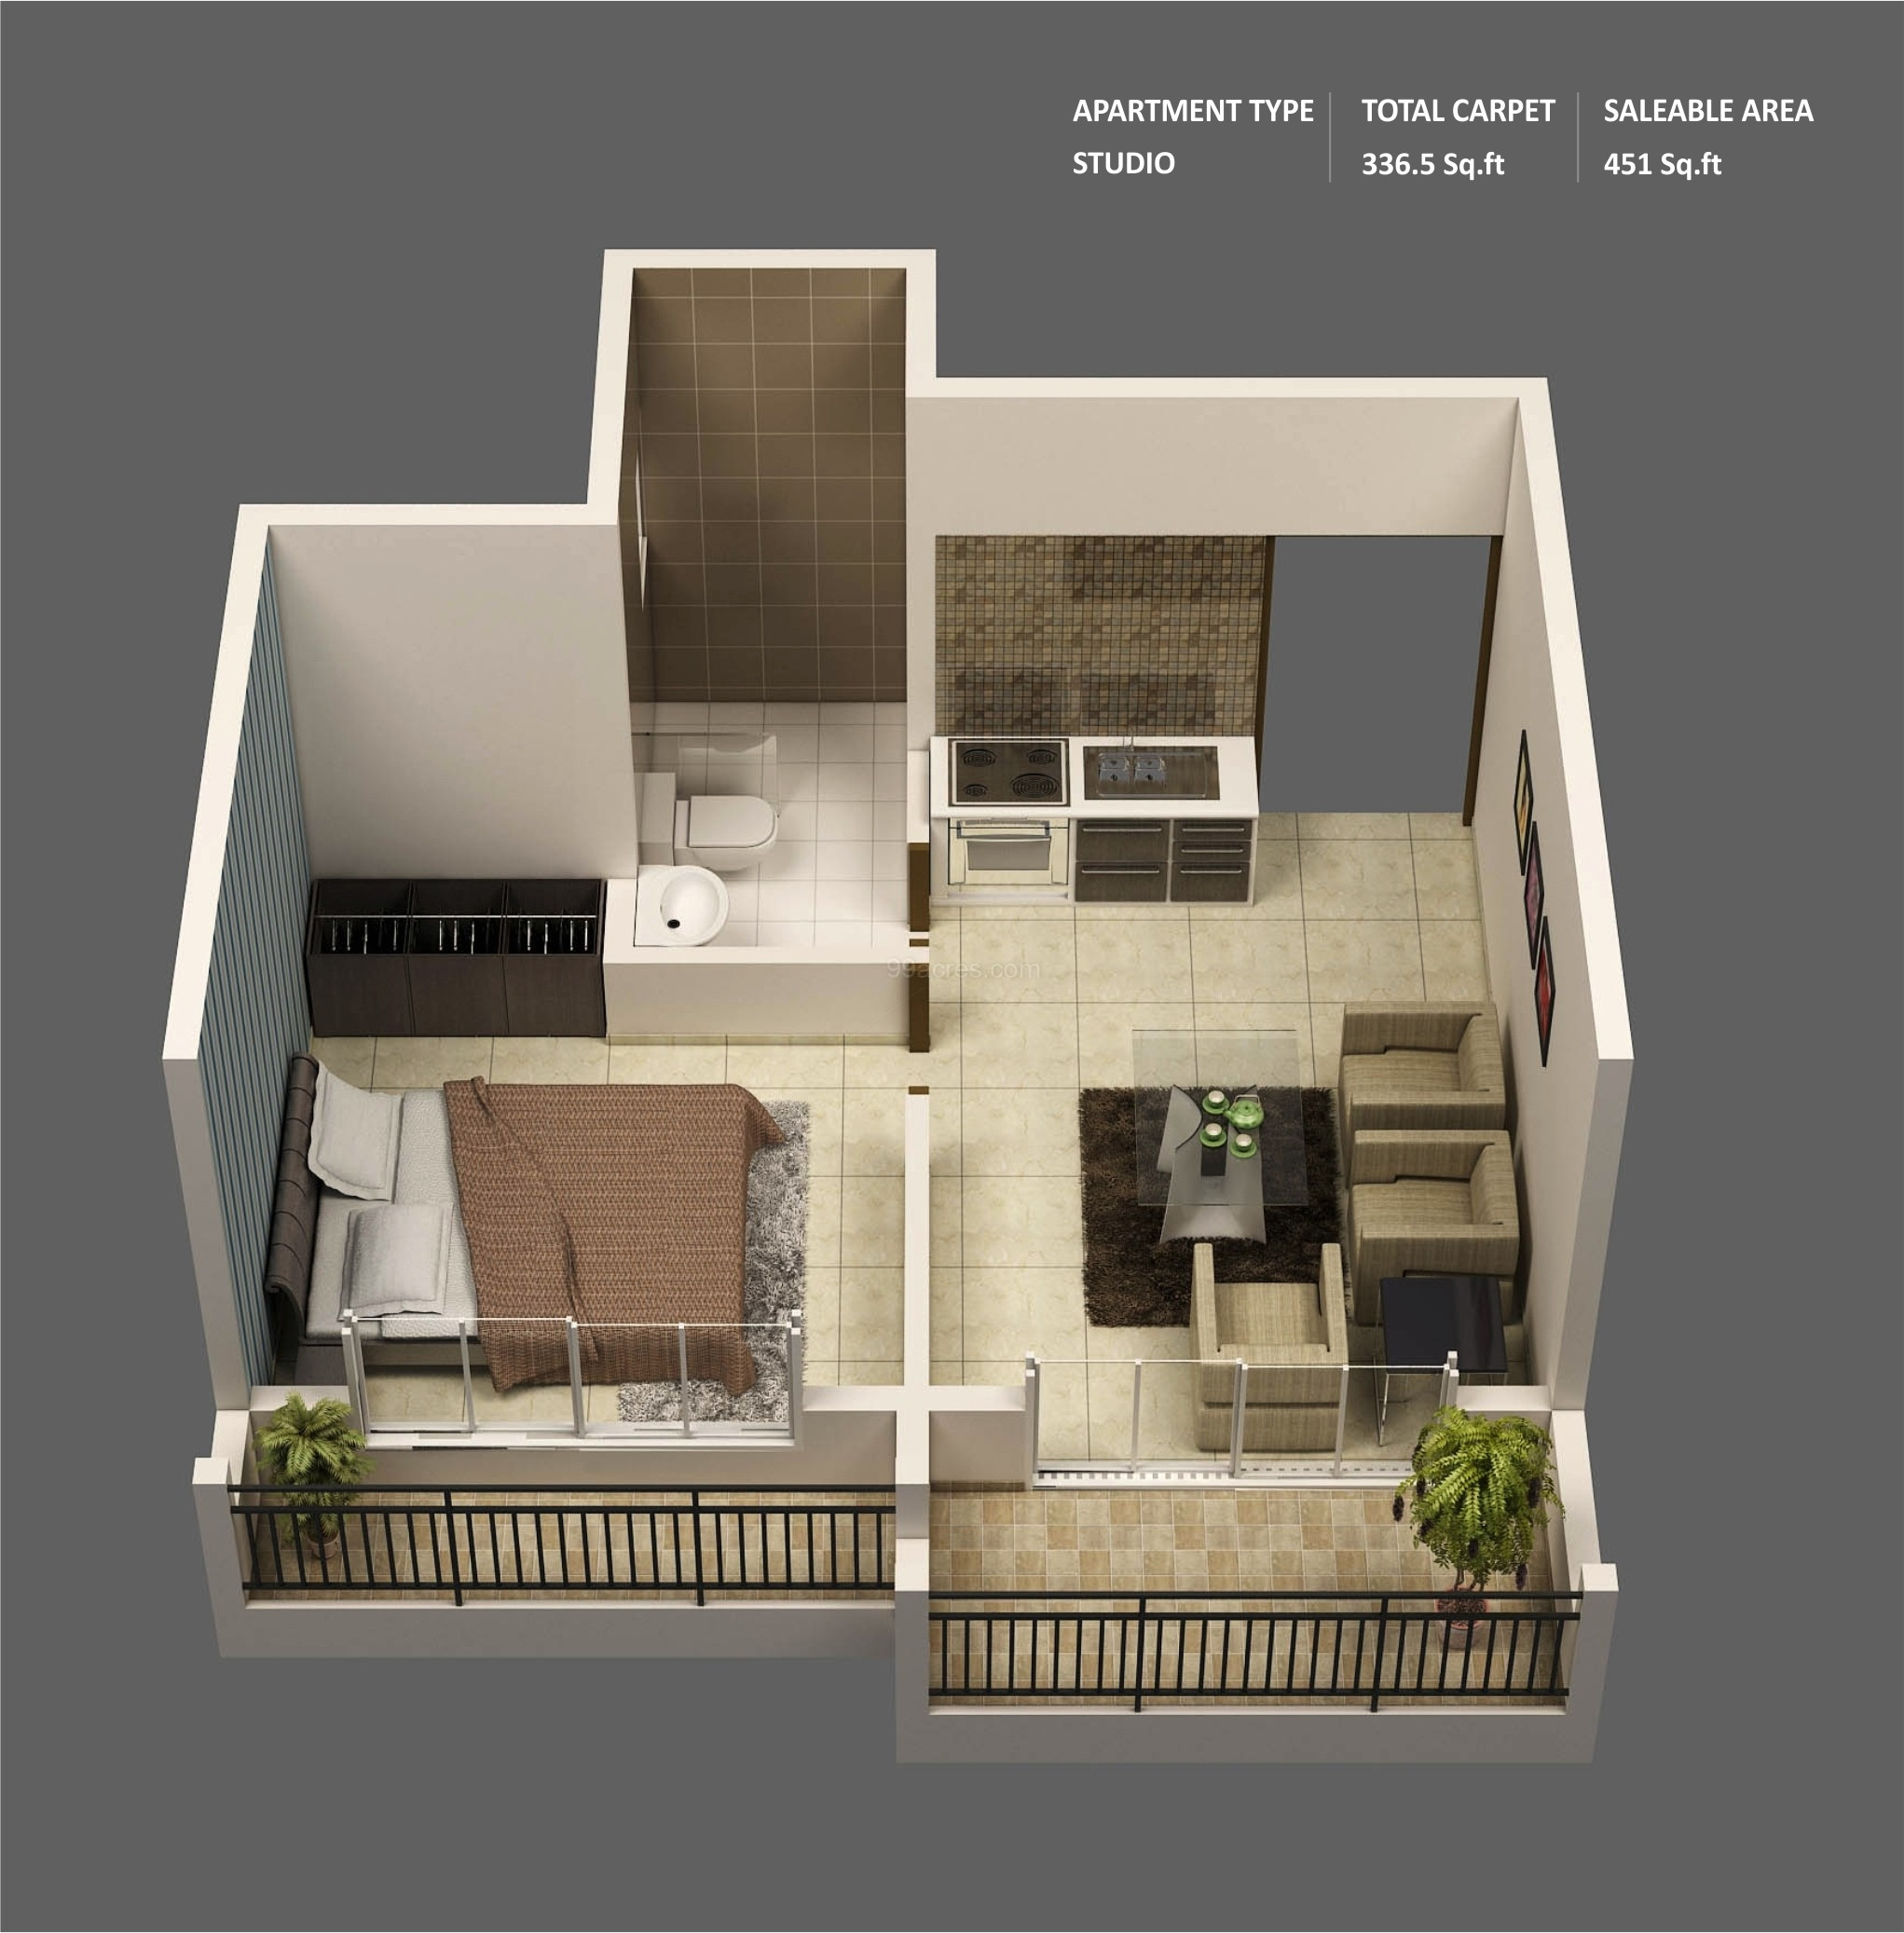 Studio Apartments Floor Plans 1 bedroom apartment/house plans